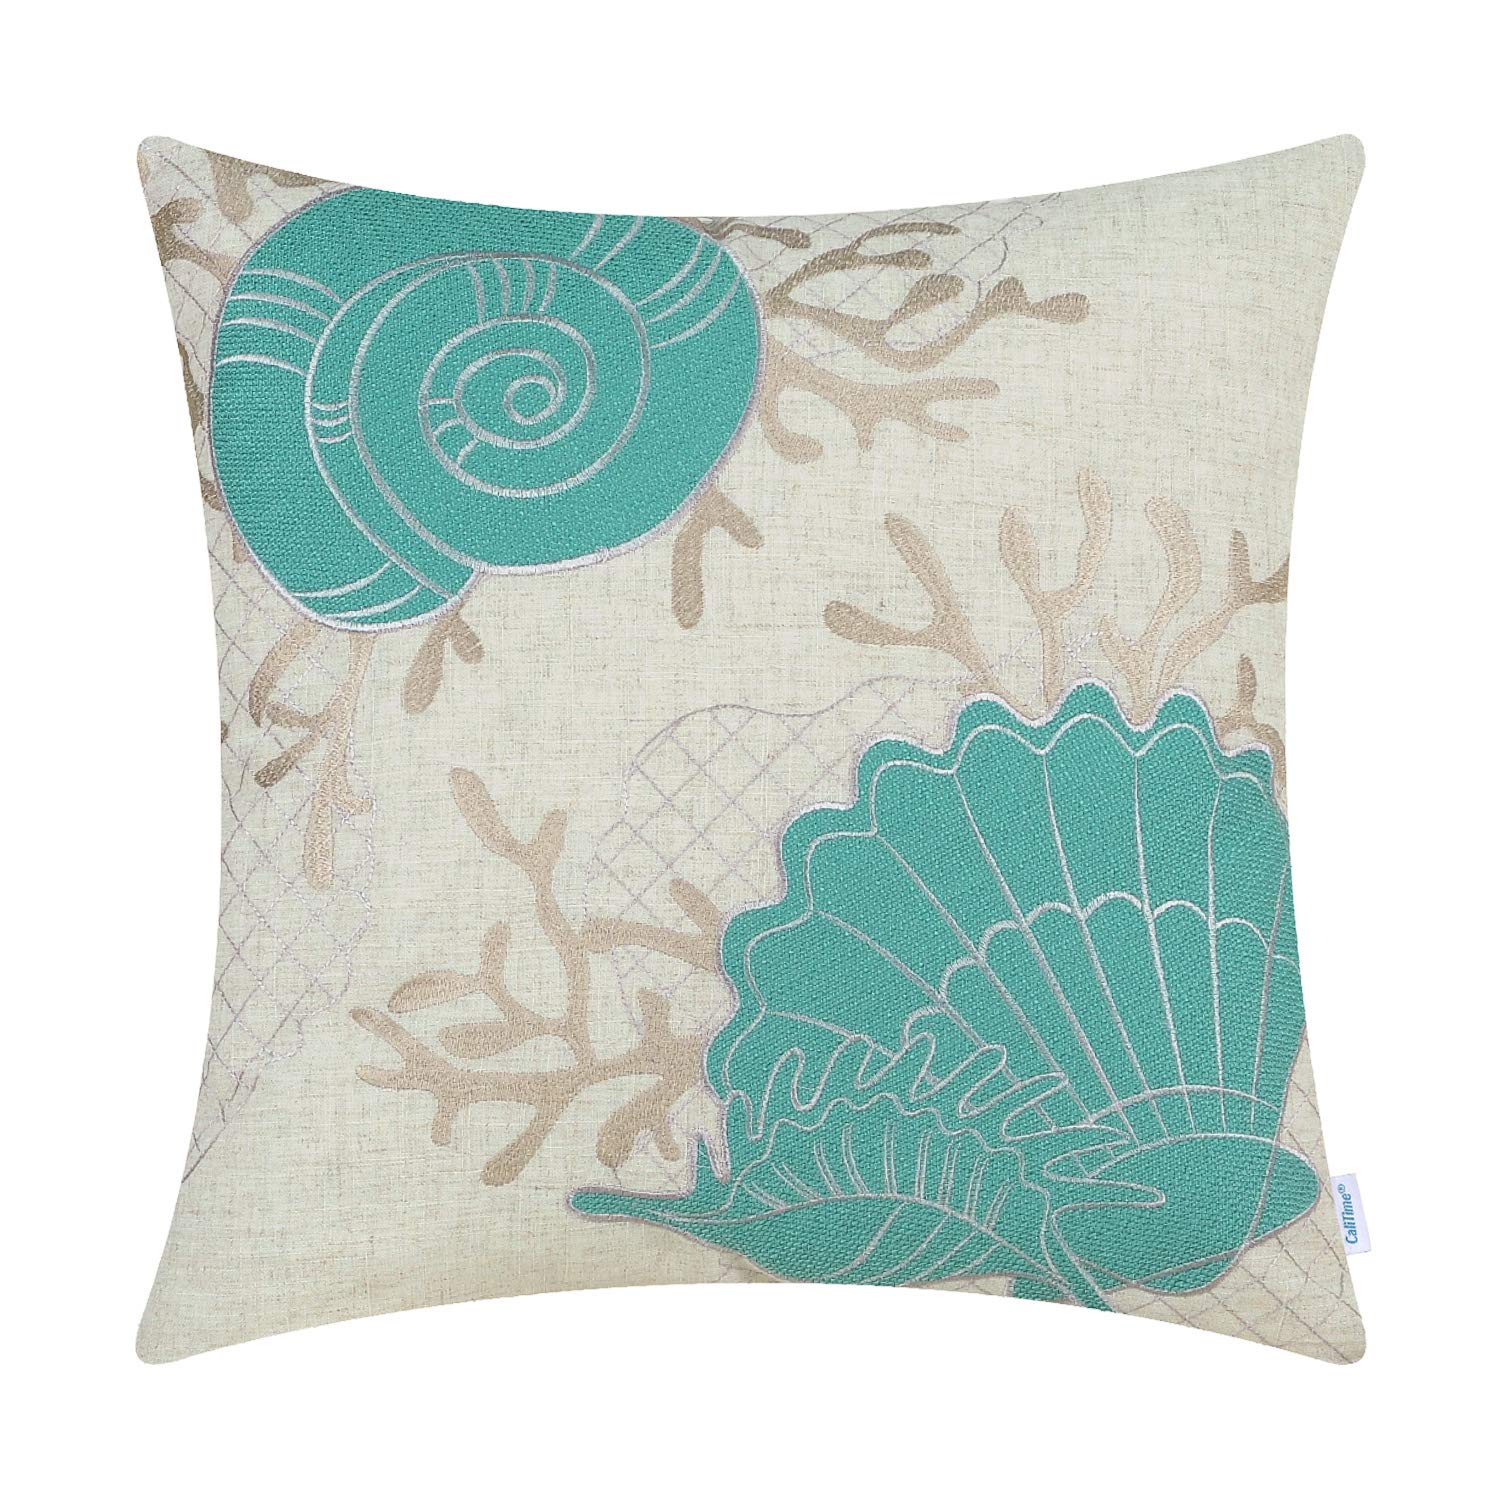 CaliTime High Class Throw Pillow Cover Case for Couch Sofa Home Decoration Sea Conch Shell Coral Applique Embroidered 18 X 18 Inches Teal